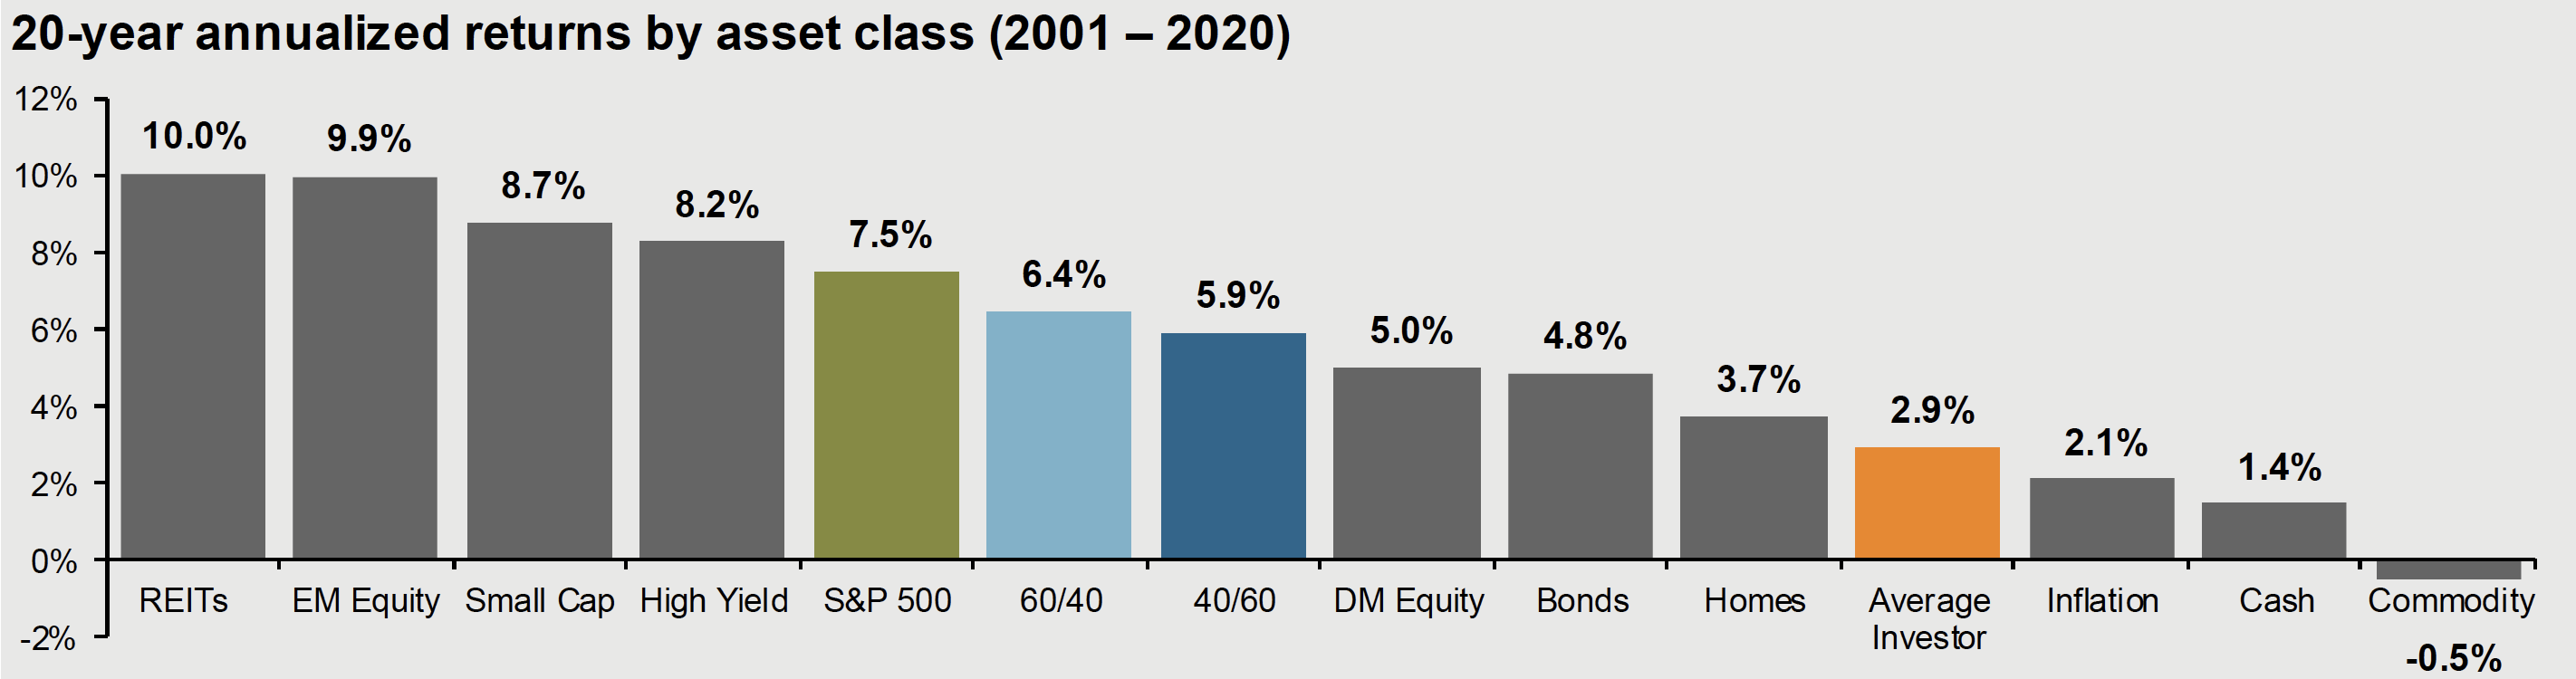 20-year annualised returns by asset class trends by JP Morgan